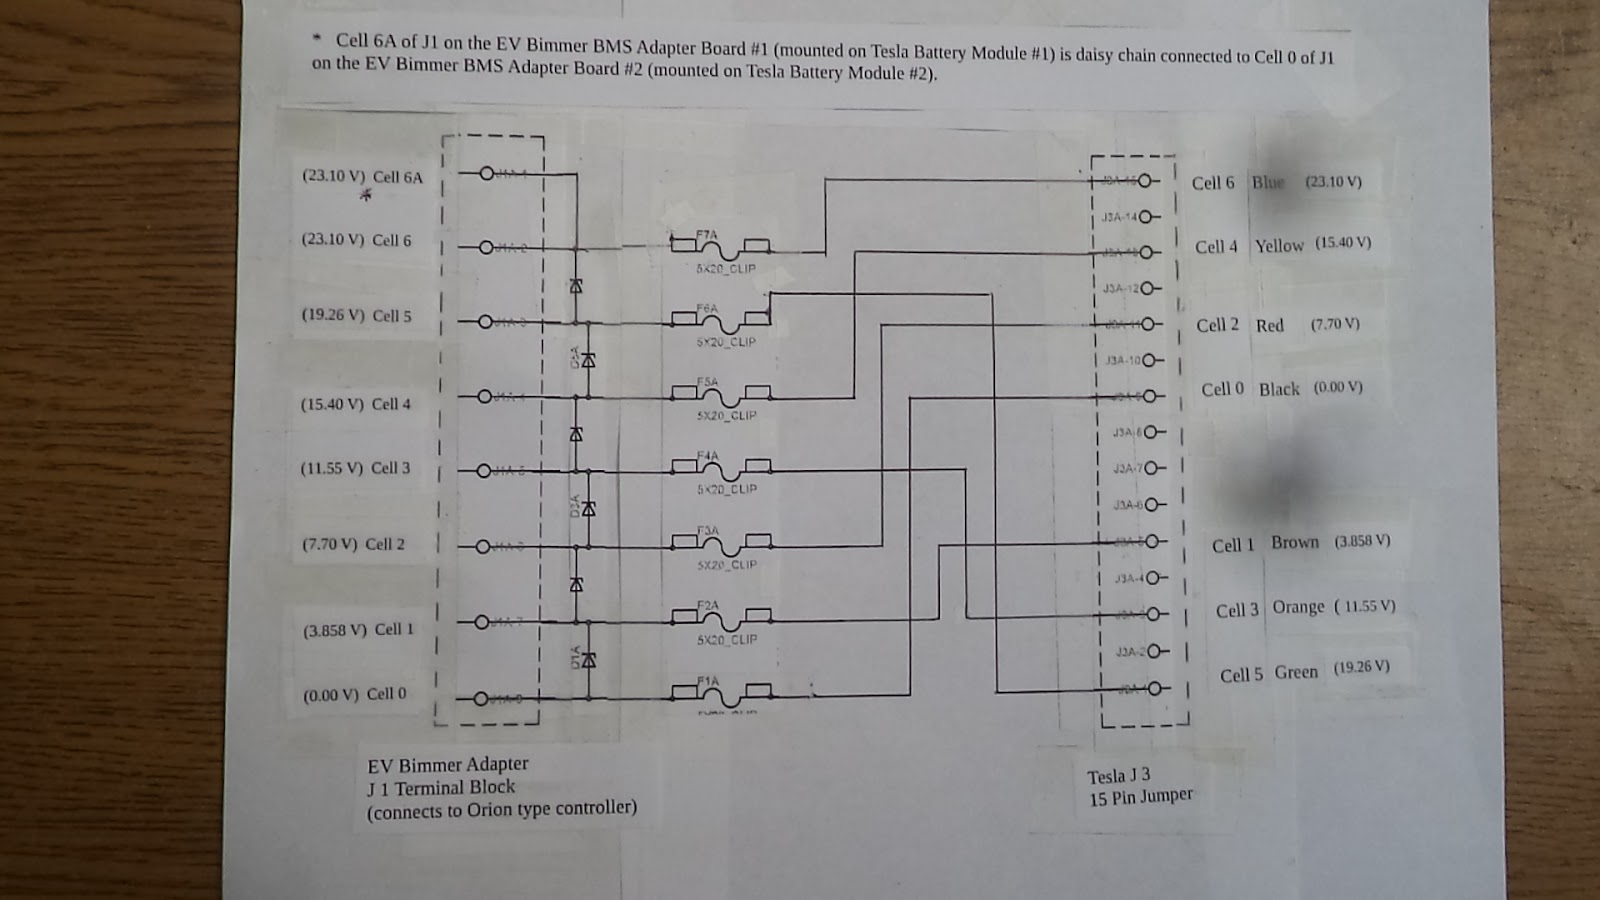 Williams Ev Bimmer 325i Tesla Battery Interface Wiring Diagrams Cell Diagram Dsc06336 Image Of The Preliminary That Connects Orion To Module Number 1